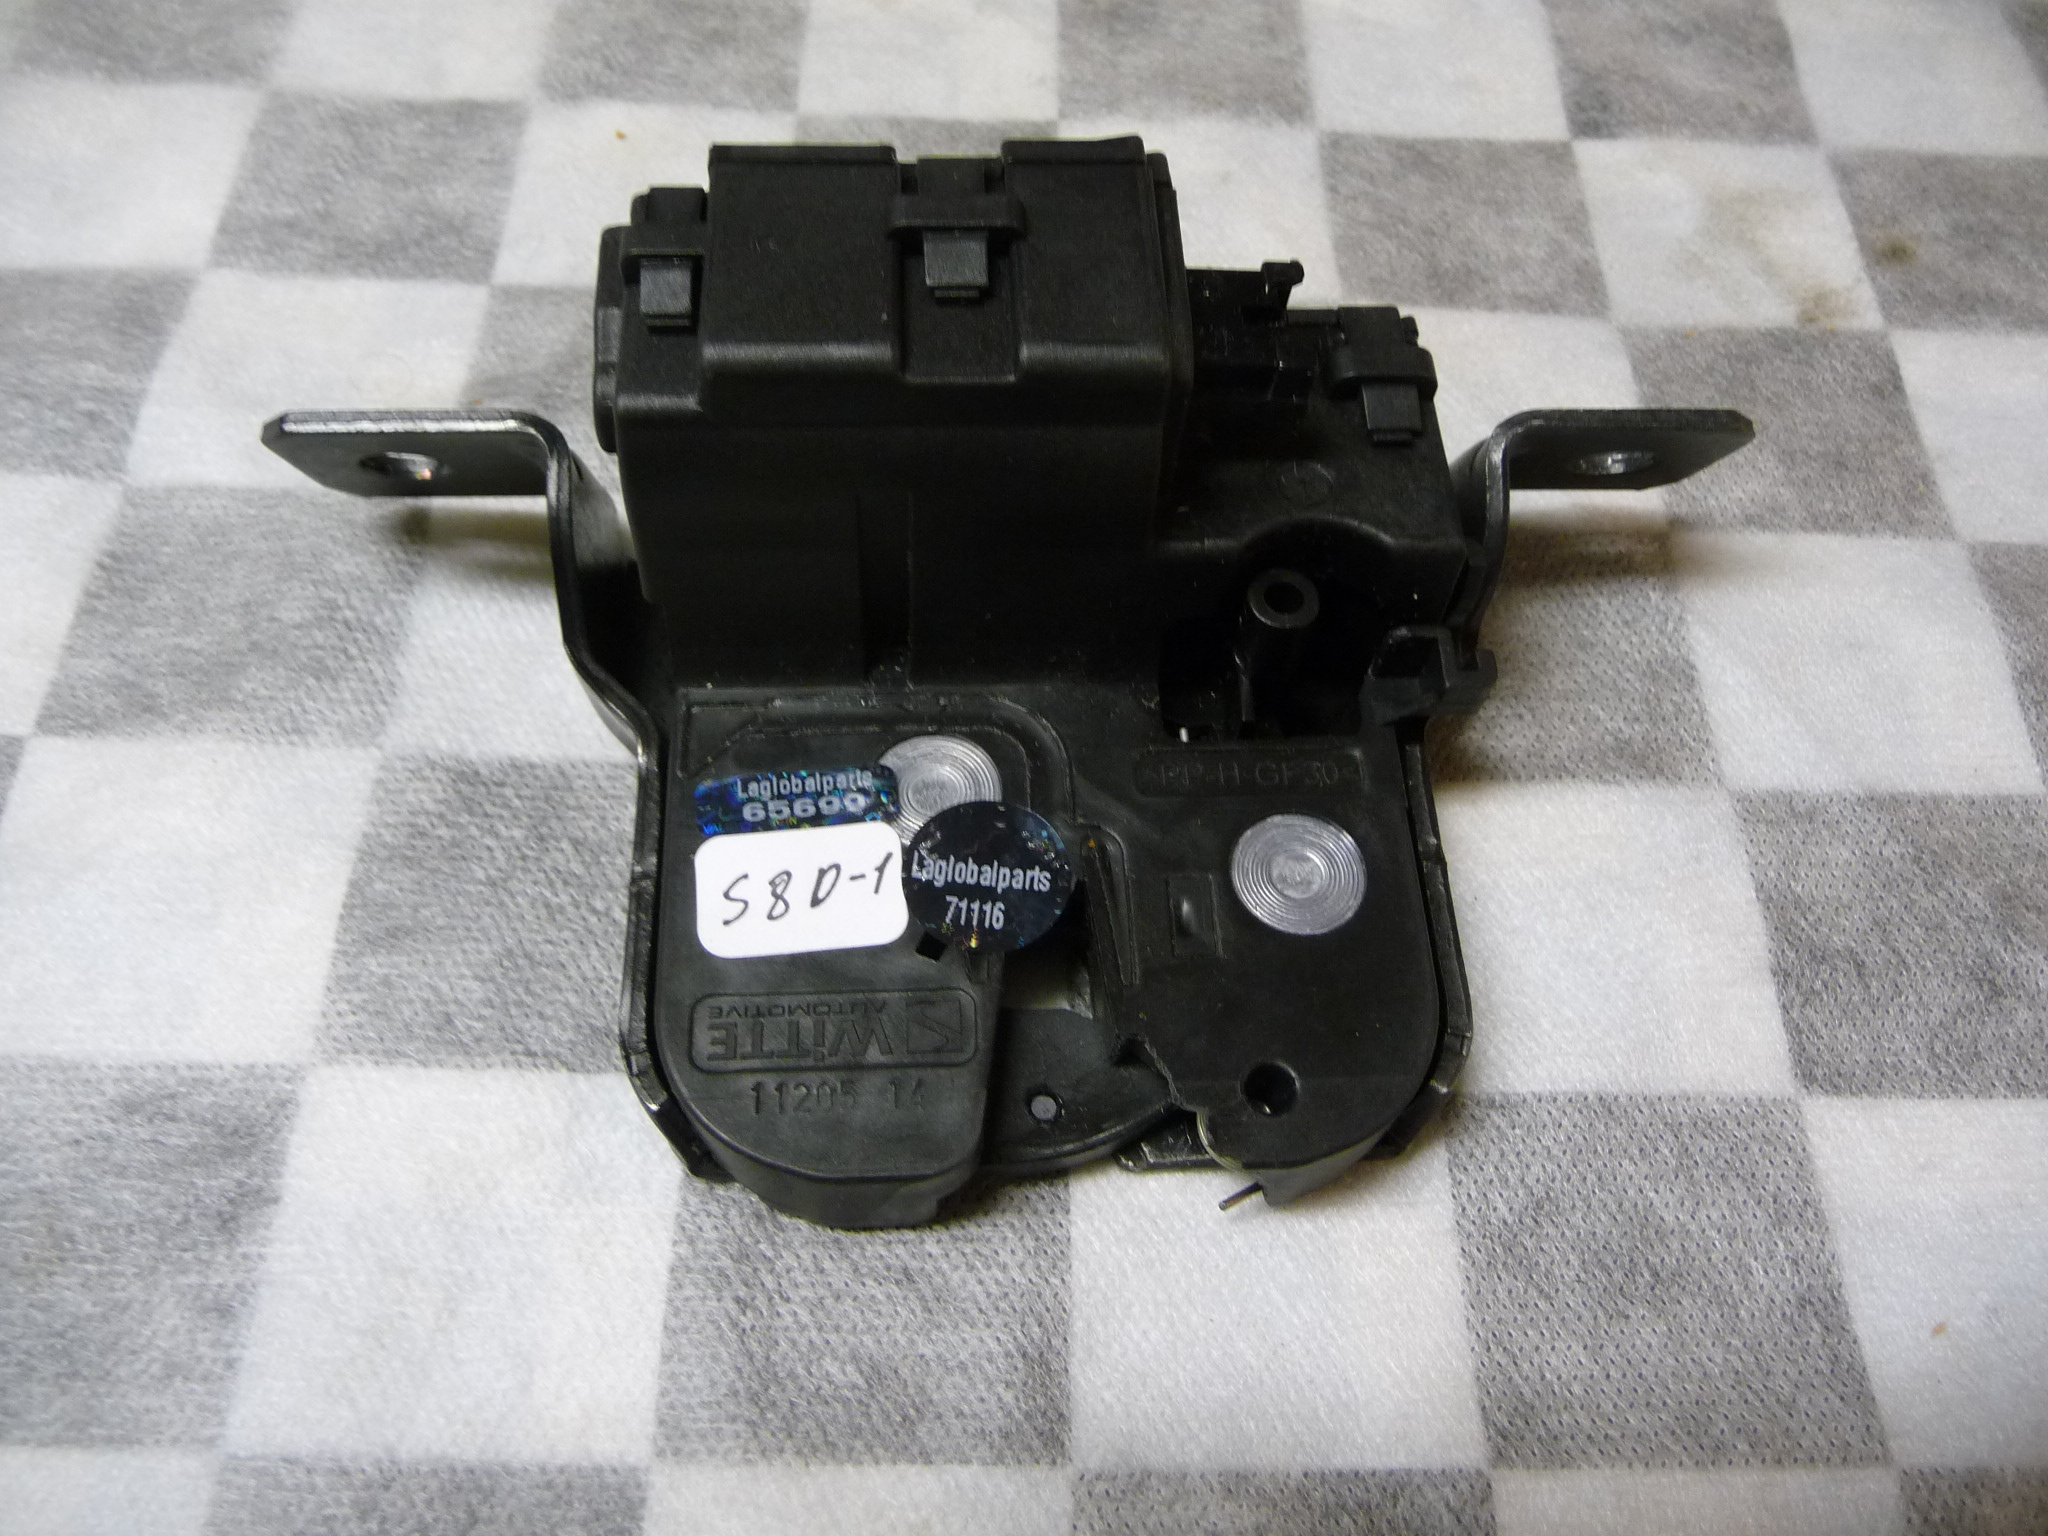 2014 2015 2016 2017 BMW i3 Tailgate Closing System Trunk Lid Lock Actuator 51247248075 OEM OE